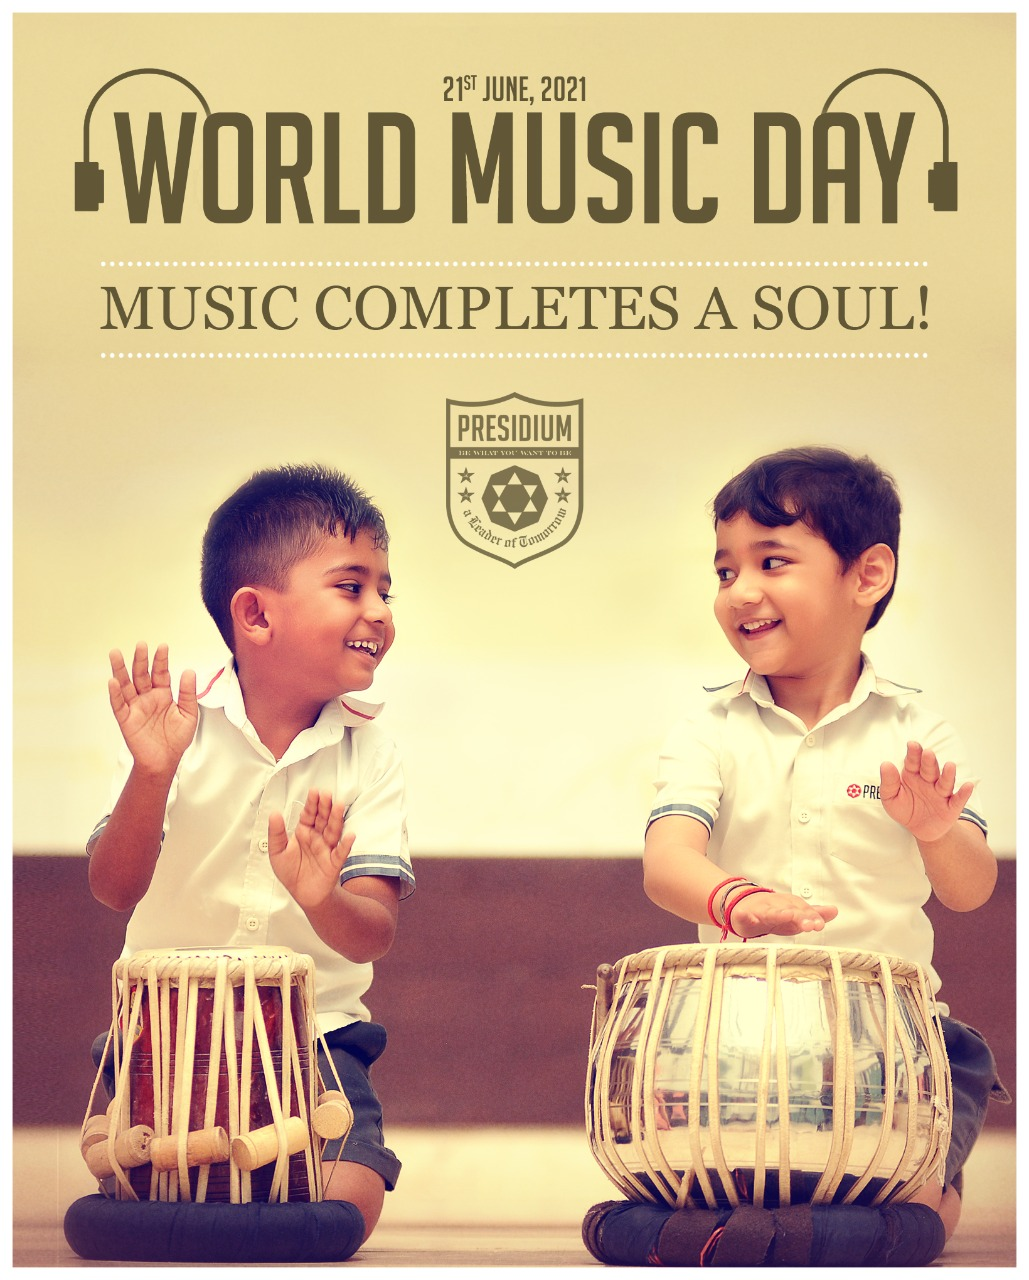 PRESIDIANS UNITE TO WISH ALL A HAPPY WORLD MUSIC DAY!